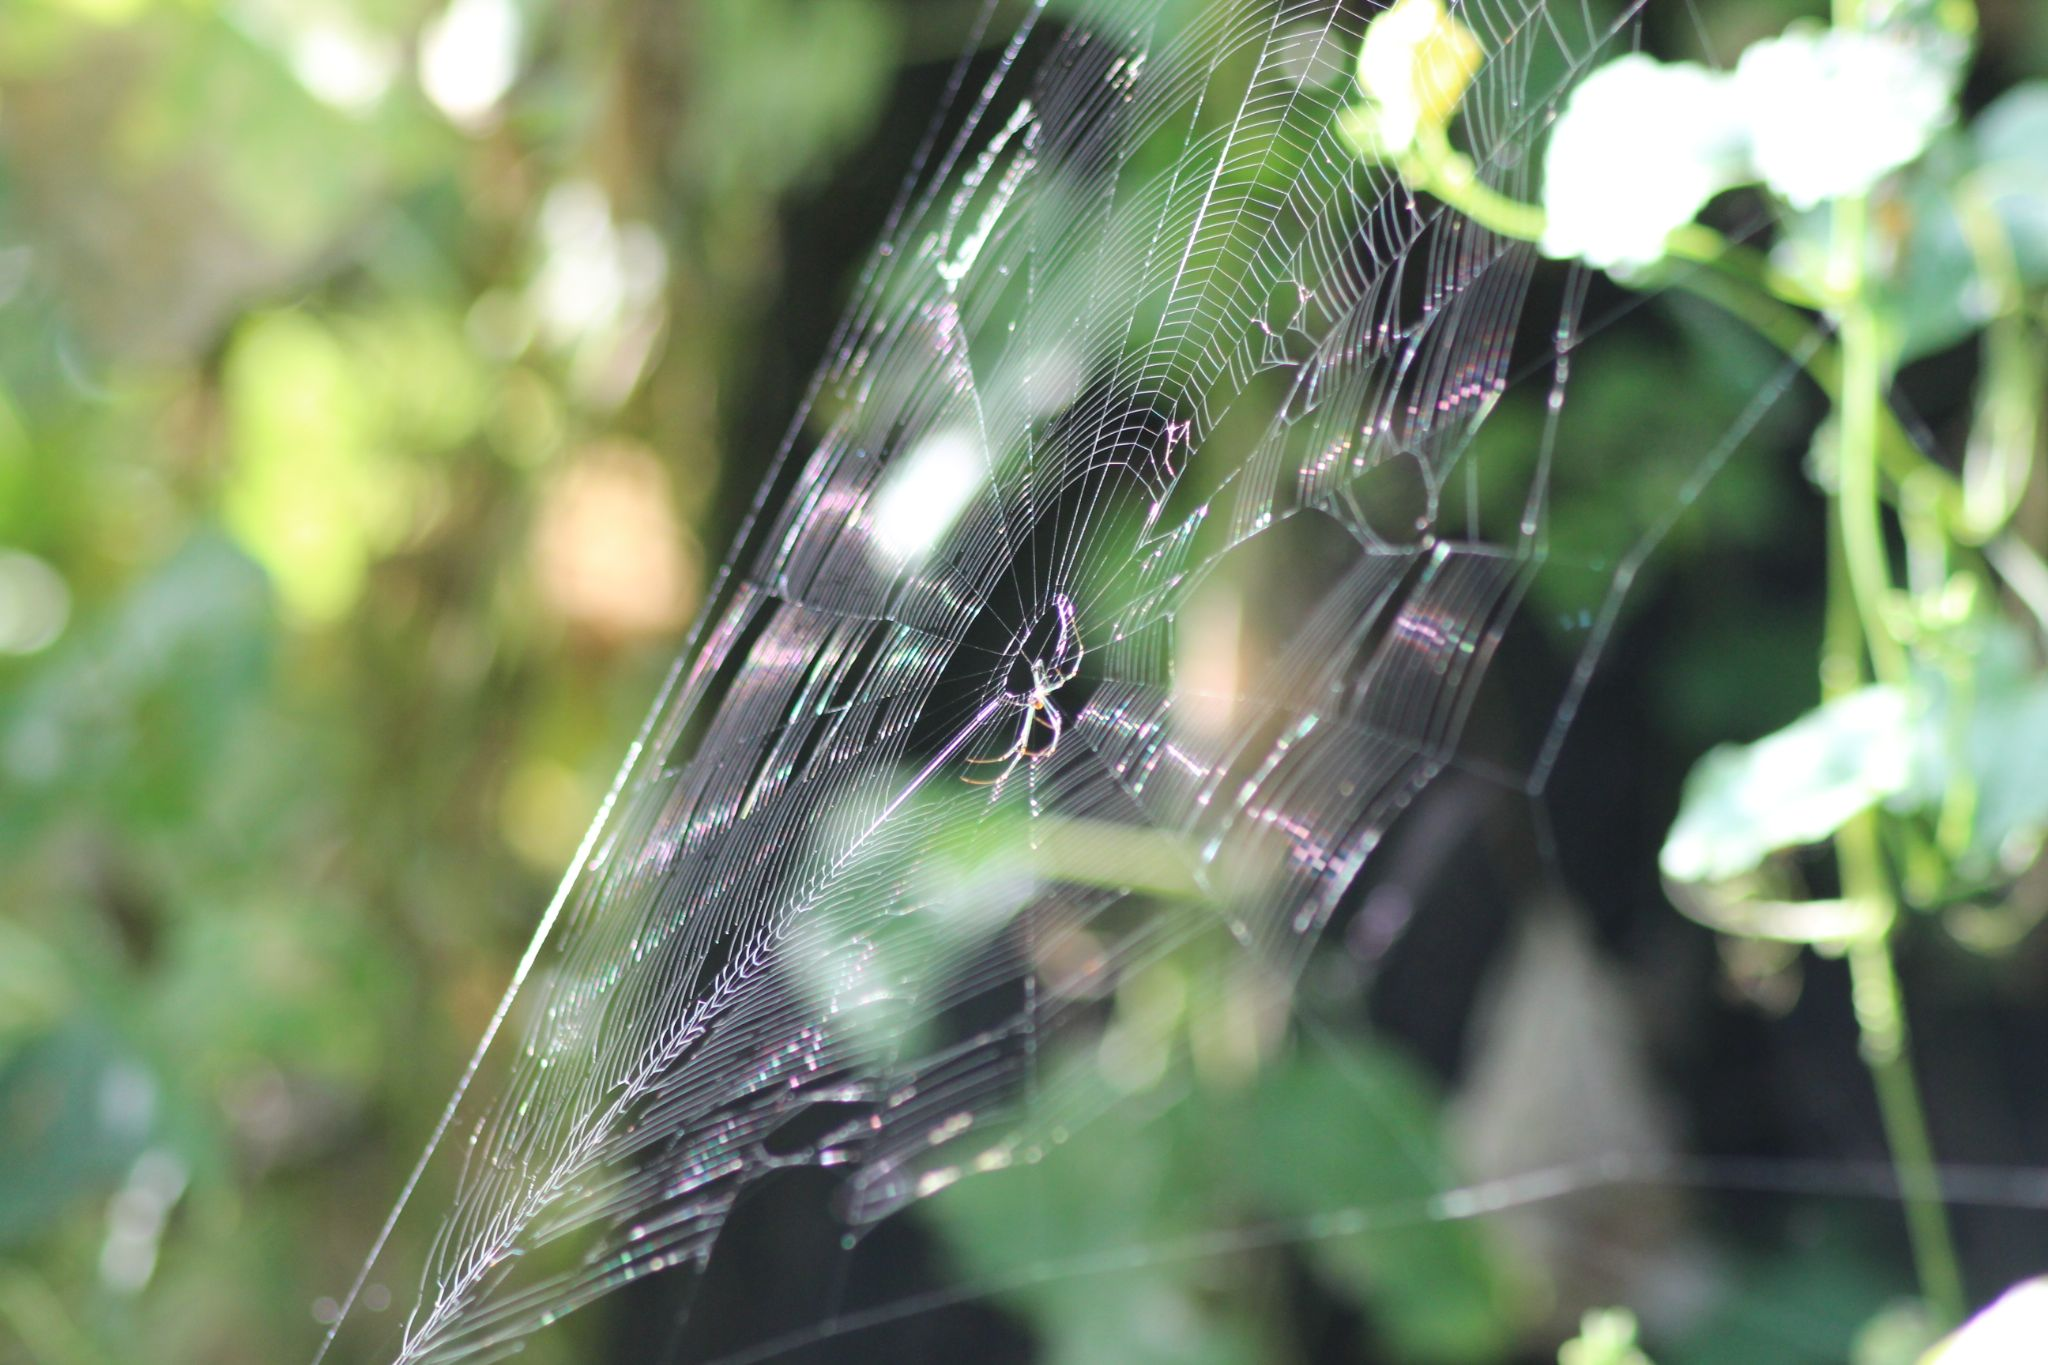 spider web by Hemang Shukla